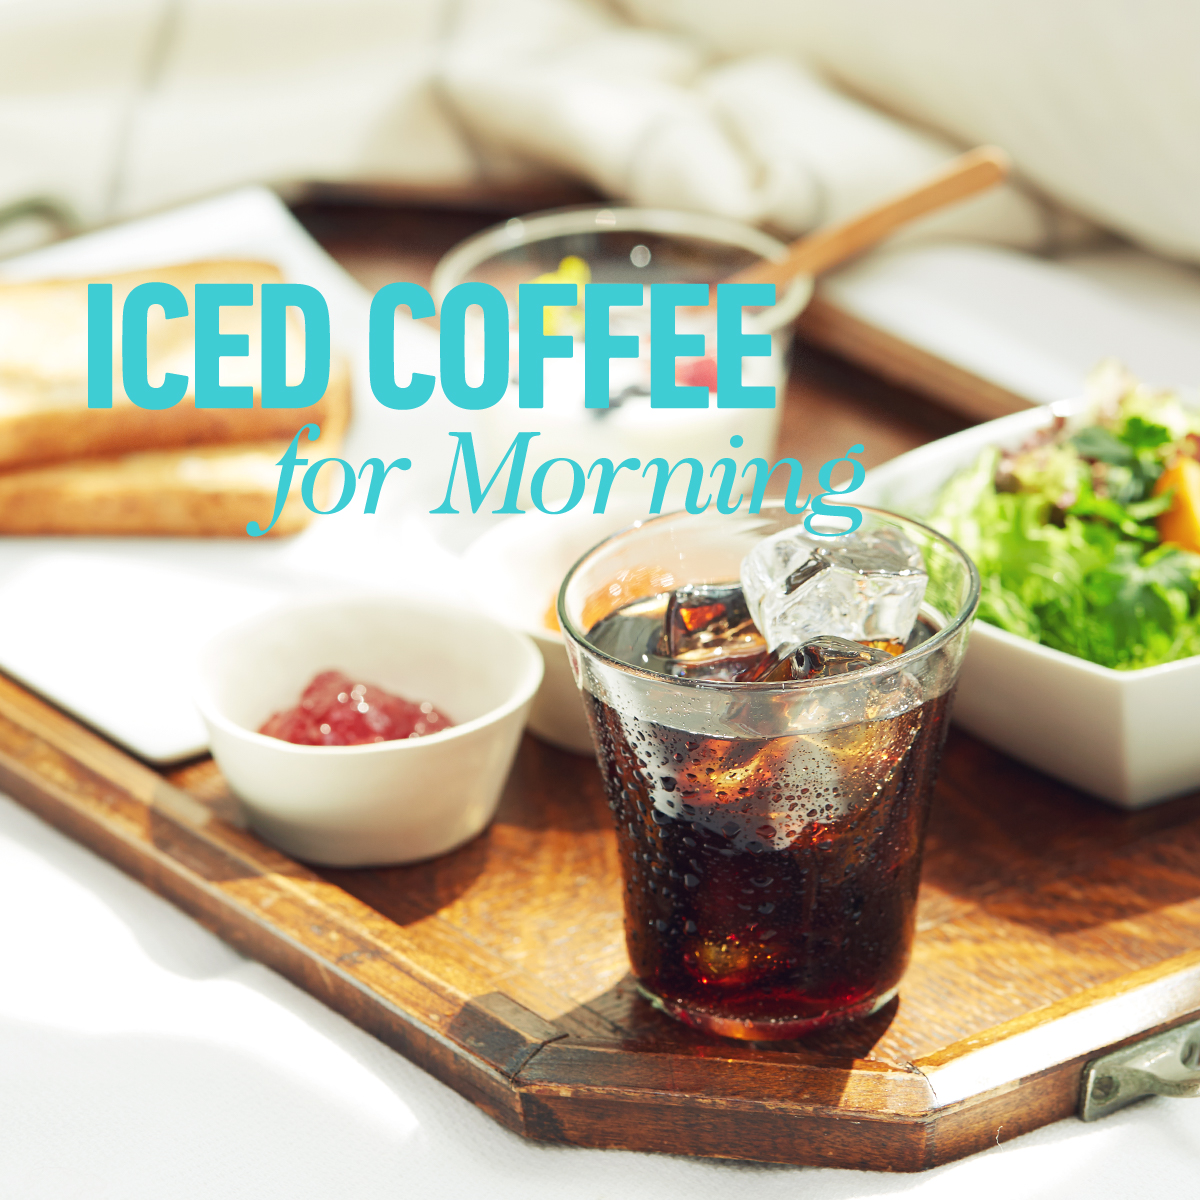 [季節のコーヒー] ICED COFFEE for Morning